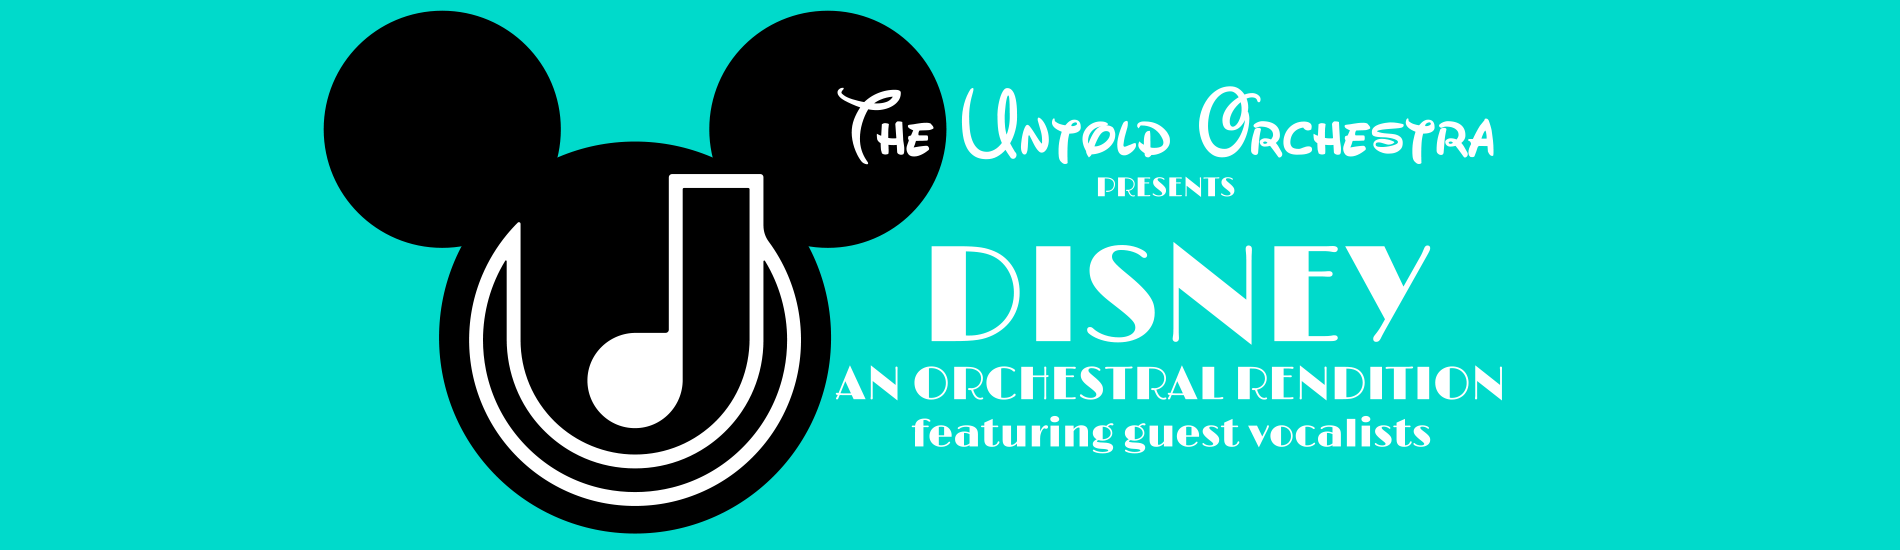 Disney: An Orchestral Rendition - 4th July